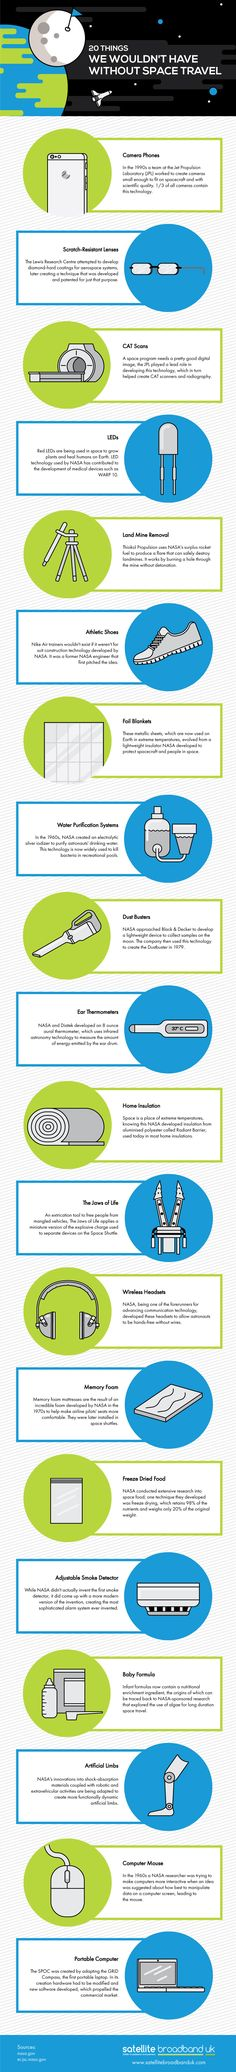 "This is why we need our space! -- See 20 everyday ""spinoffs"" from NASA technologies that are benefiting life on Earth in the form of commercial products. 20 Inventions We Wouldn't Have Without Space Travel infographic."